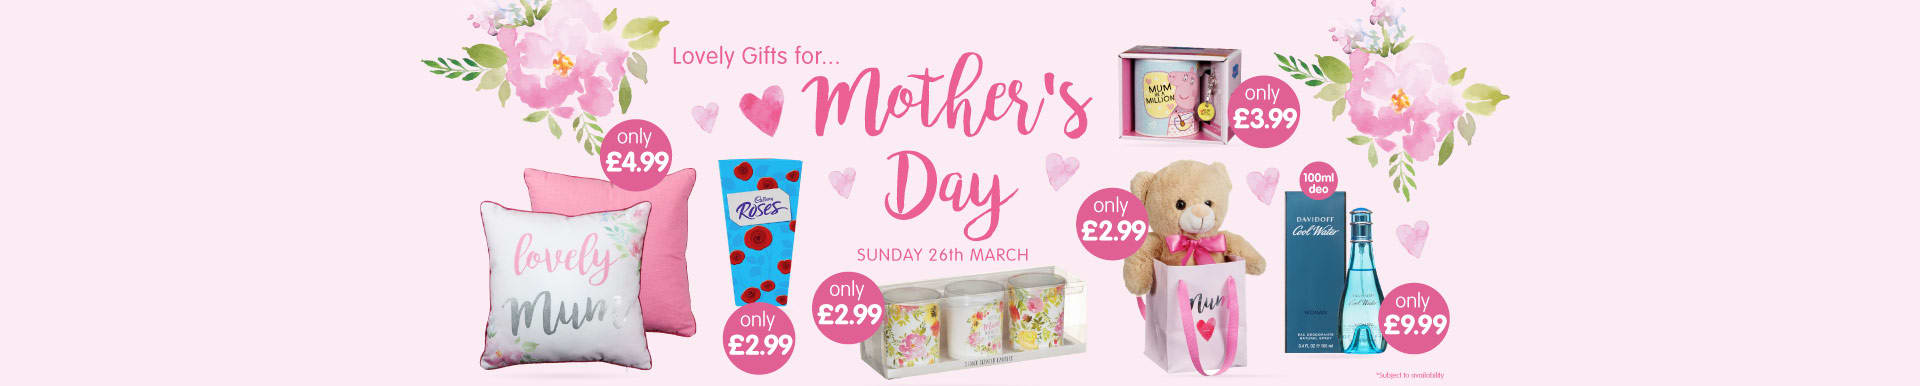 Save on Mothers Day at B&M.